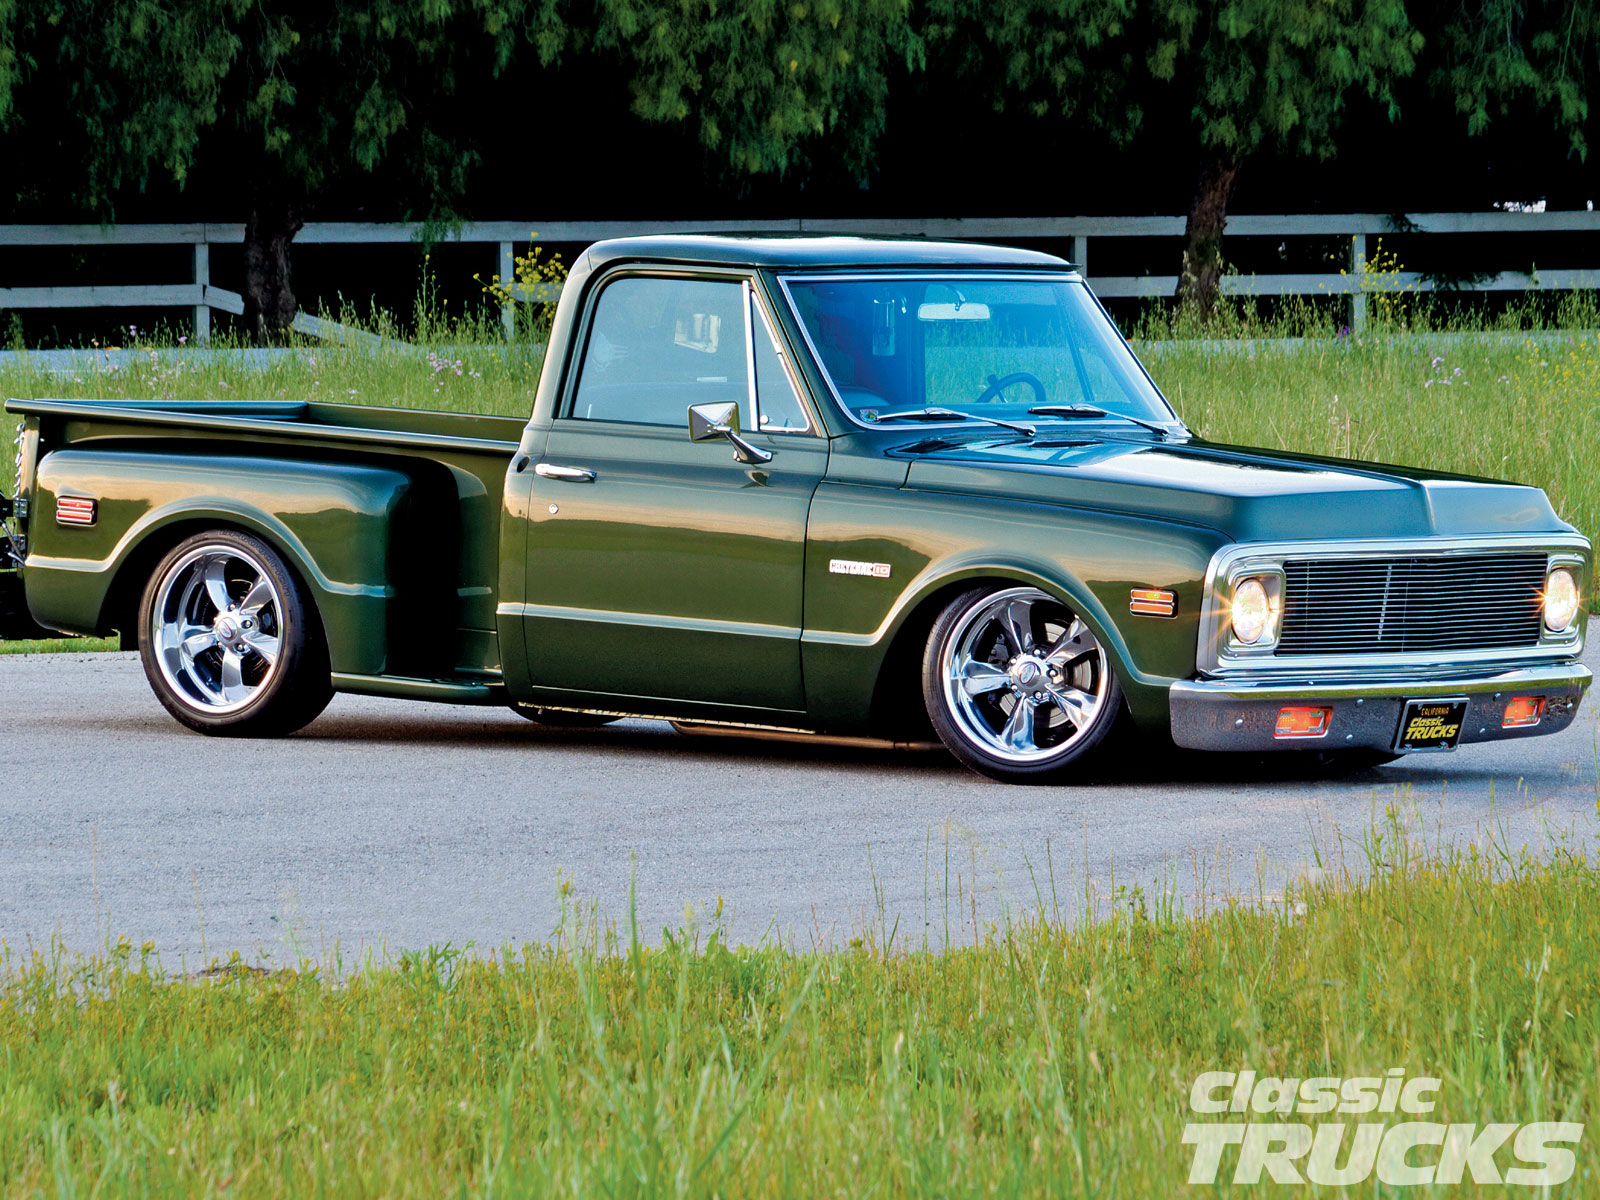 hight resolution of 1105clt 01 o 1971 chevy c10 side